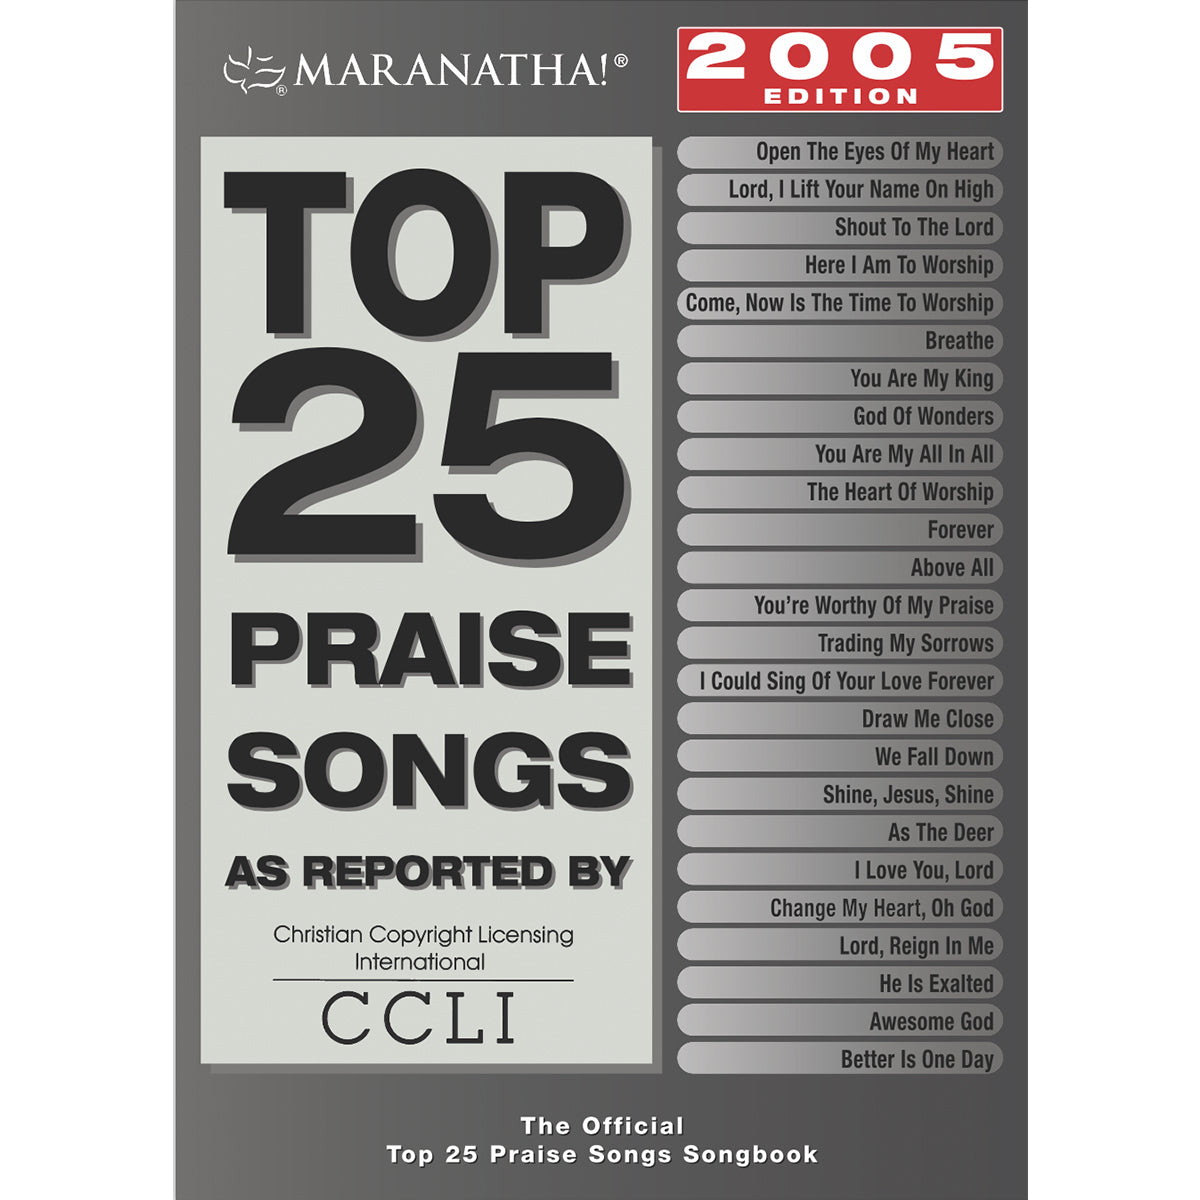 Top 25 Praise Songs 2005 Songbook